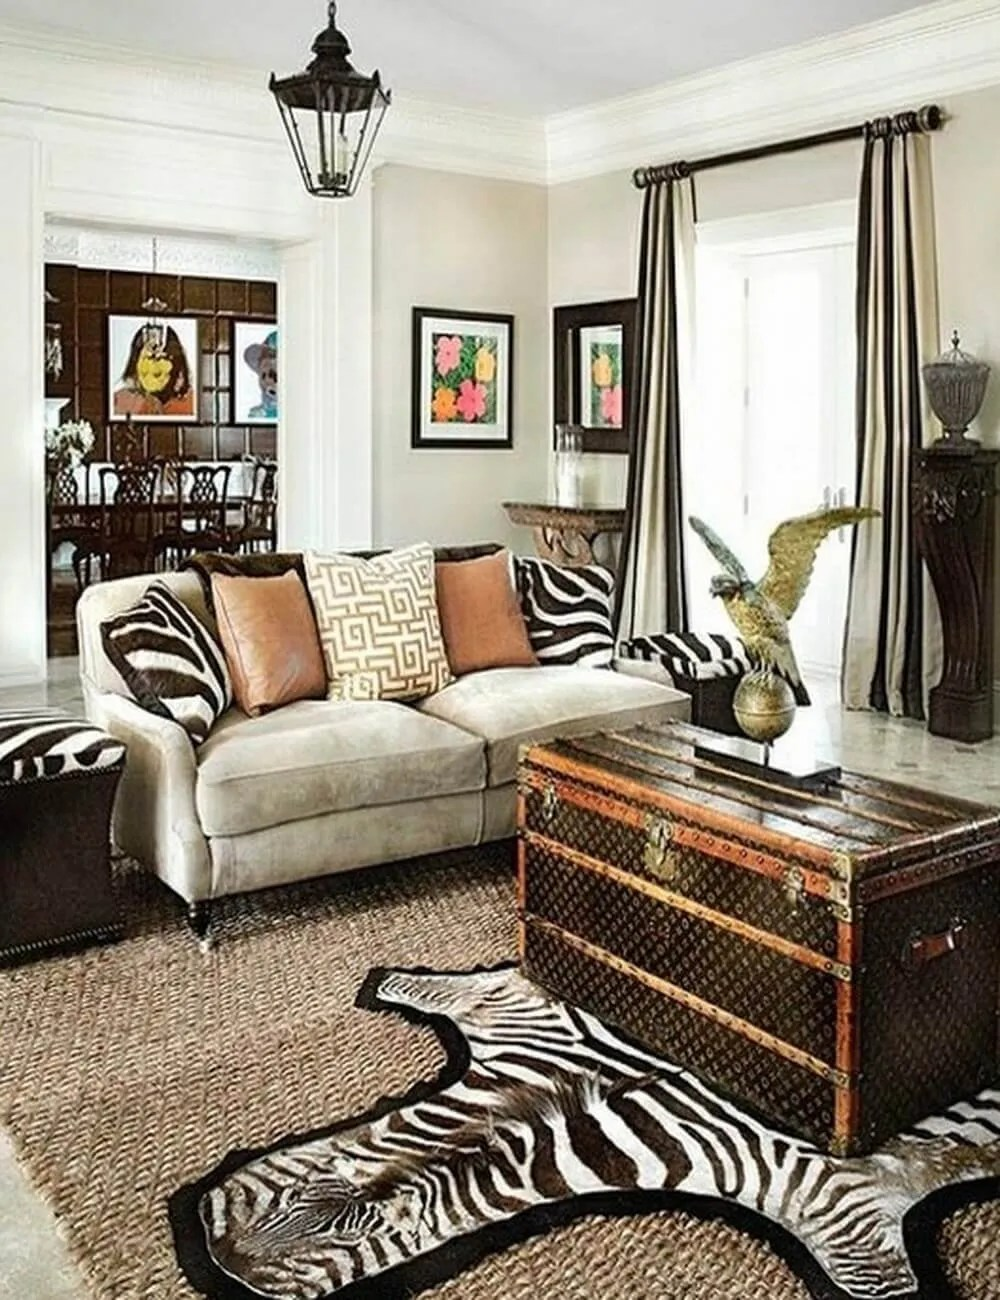 Zebra print living room decor modern house for Zebra decorations for home